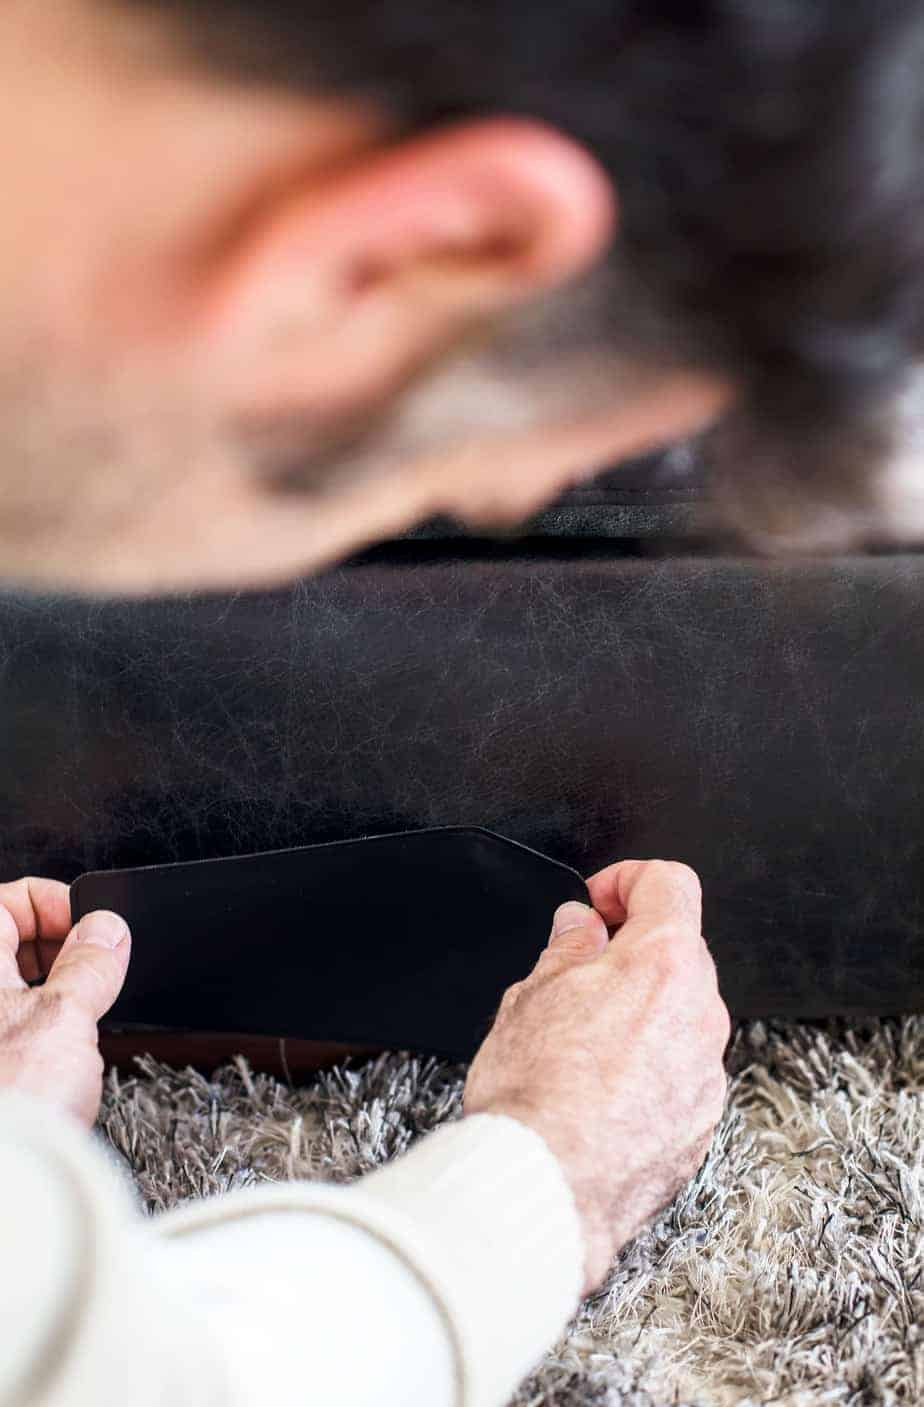 how to repair small hole in leather sofa flexsteel thornton reviews a couch repairing tear